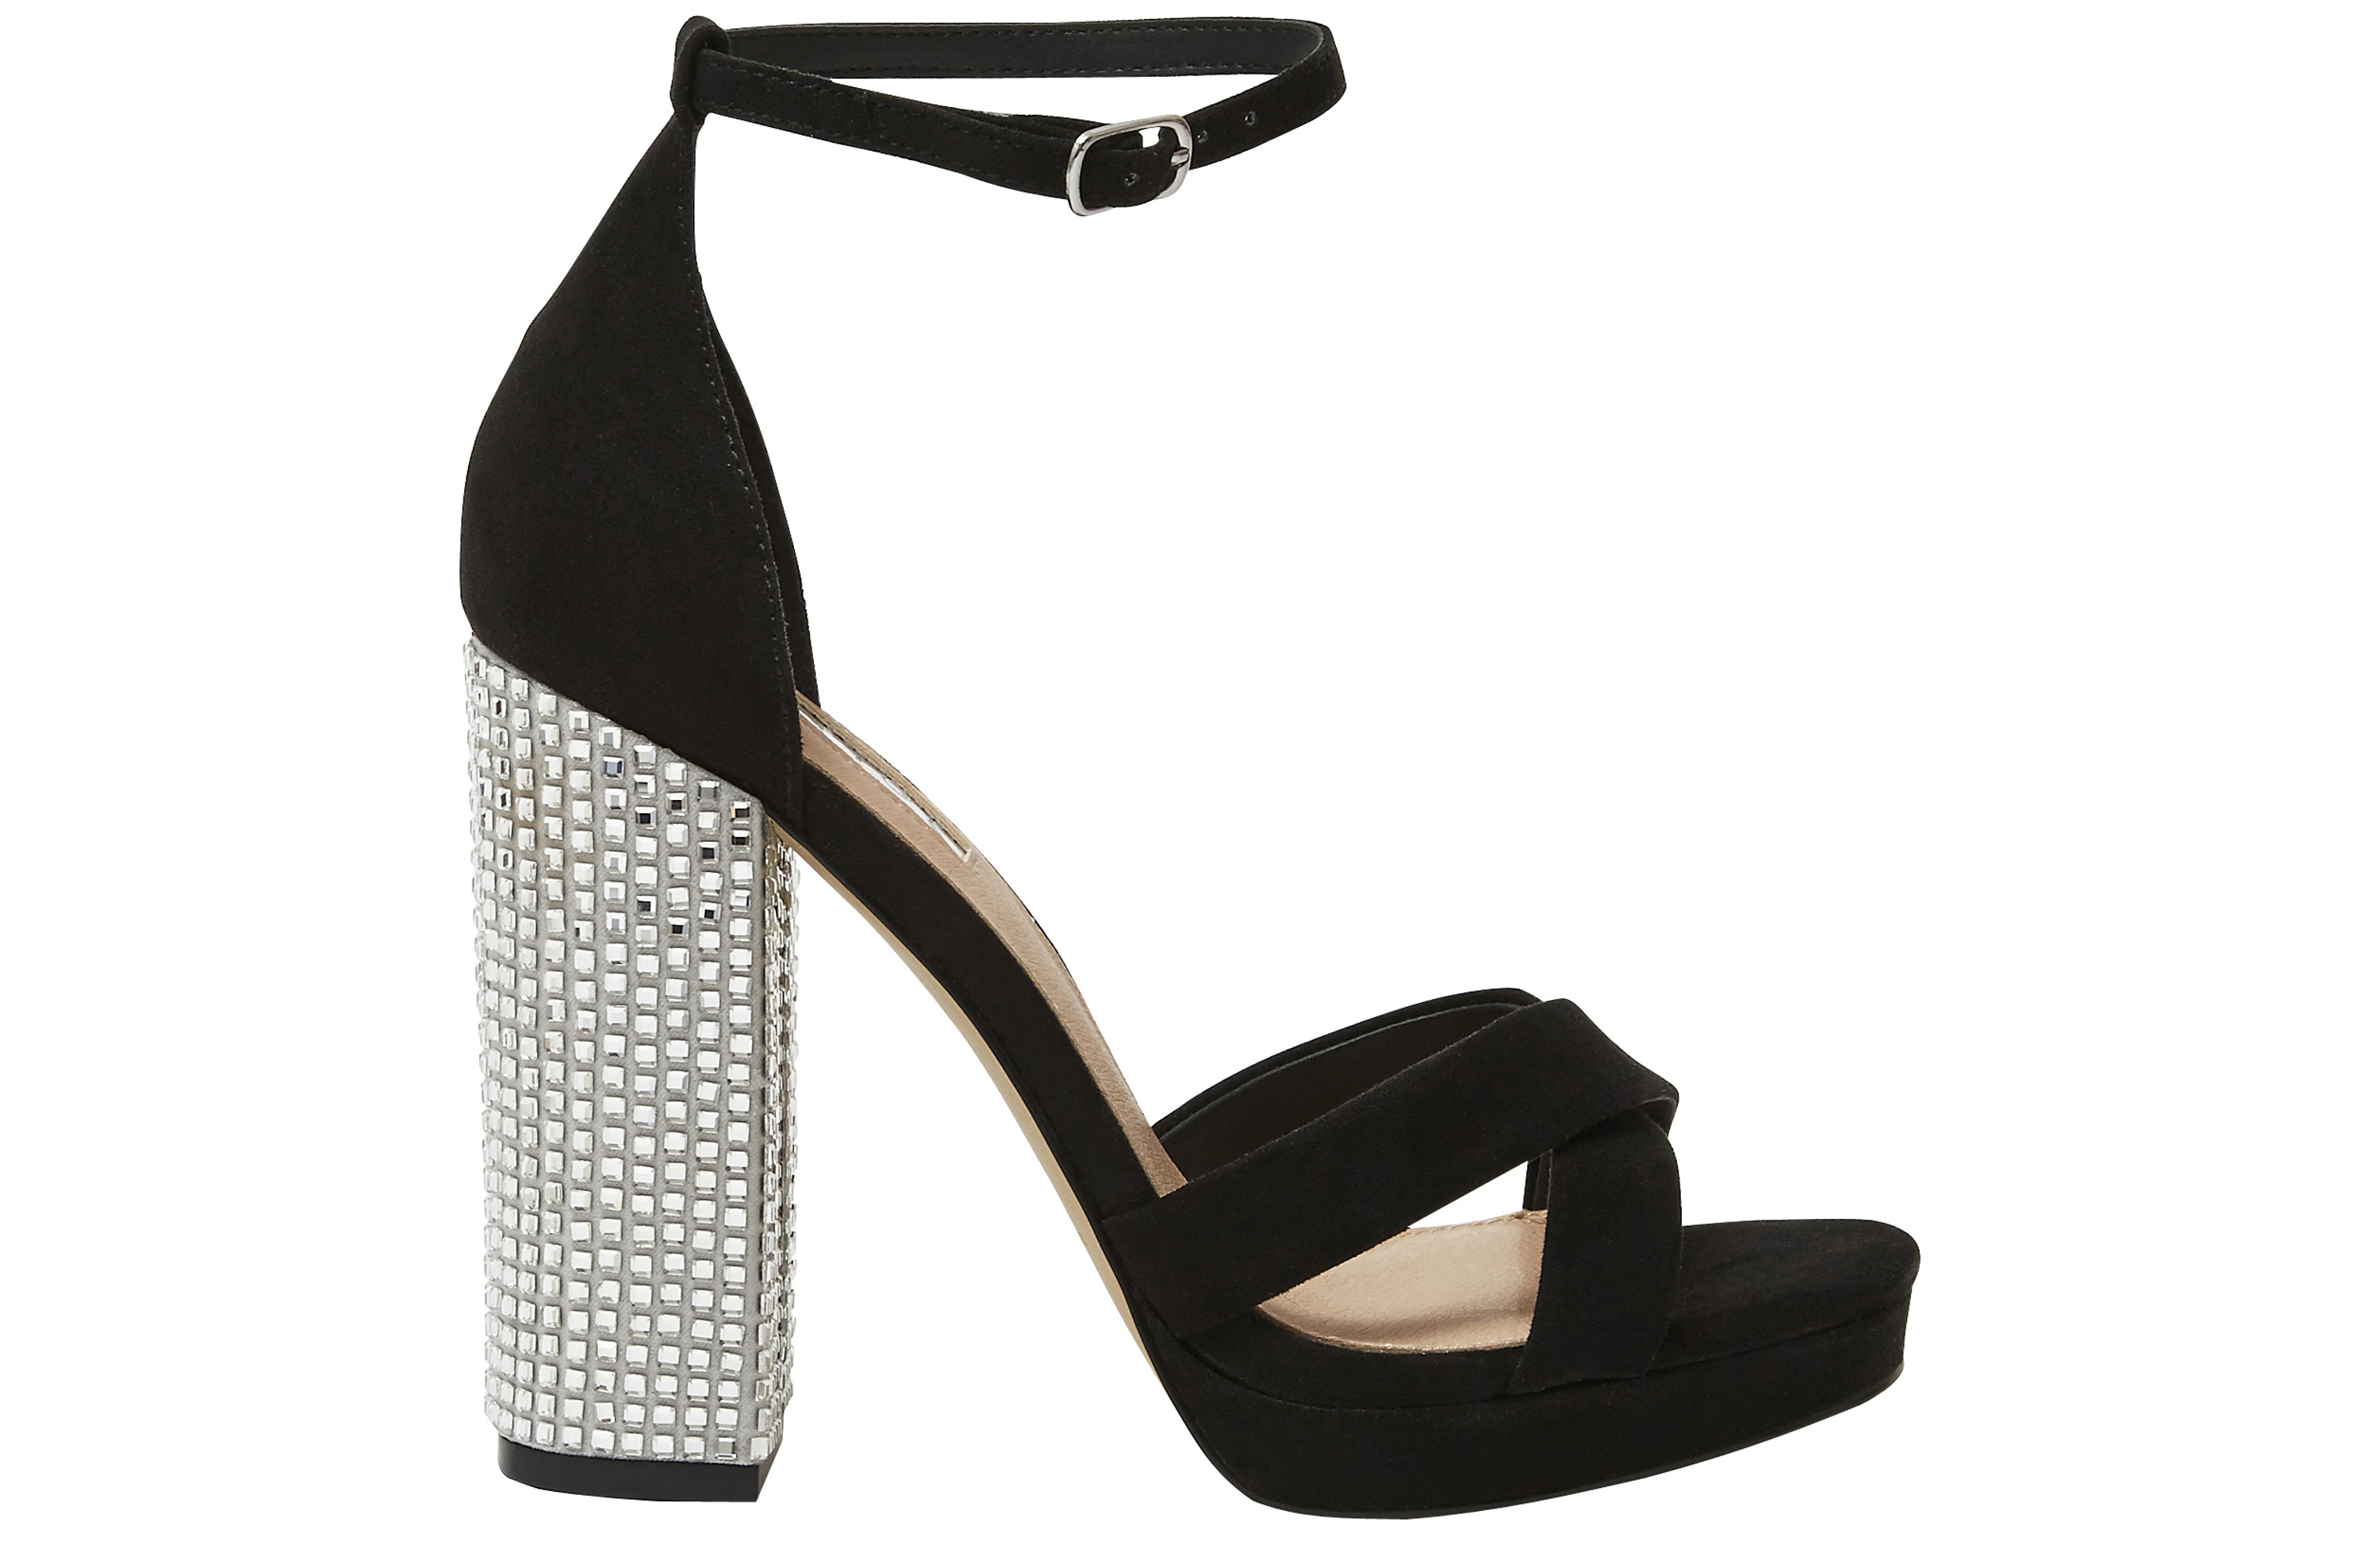 465a75eaa96c Office Hiccup Black Cross Vamp Platforms Office PA). Office Hiccup Black  Cross Vamp Platforms